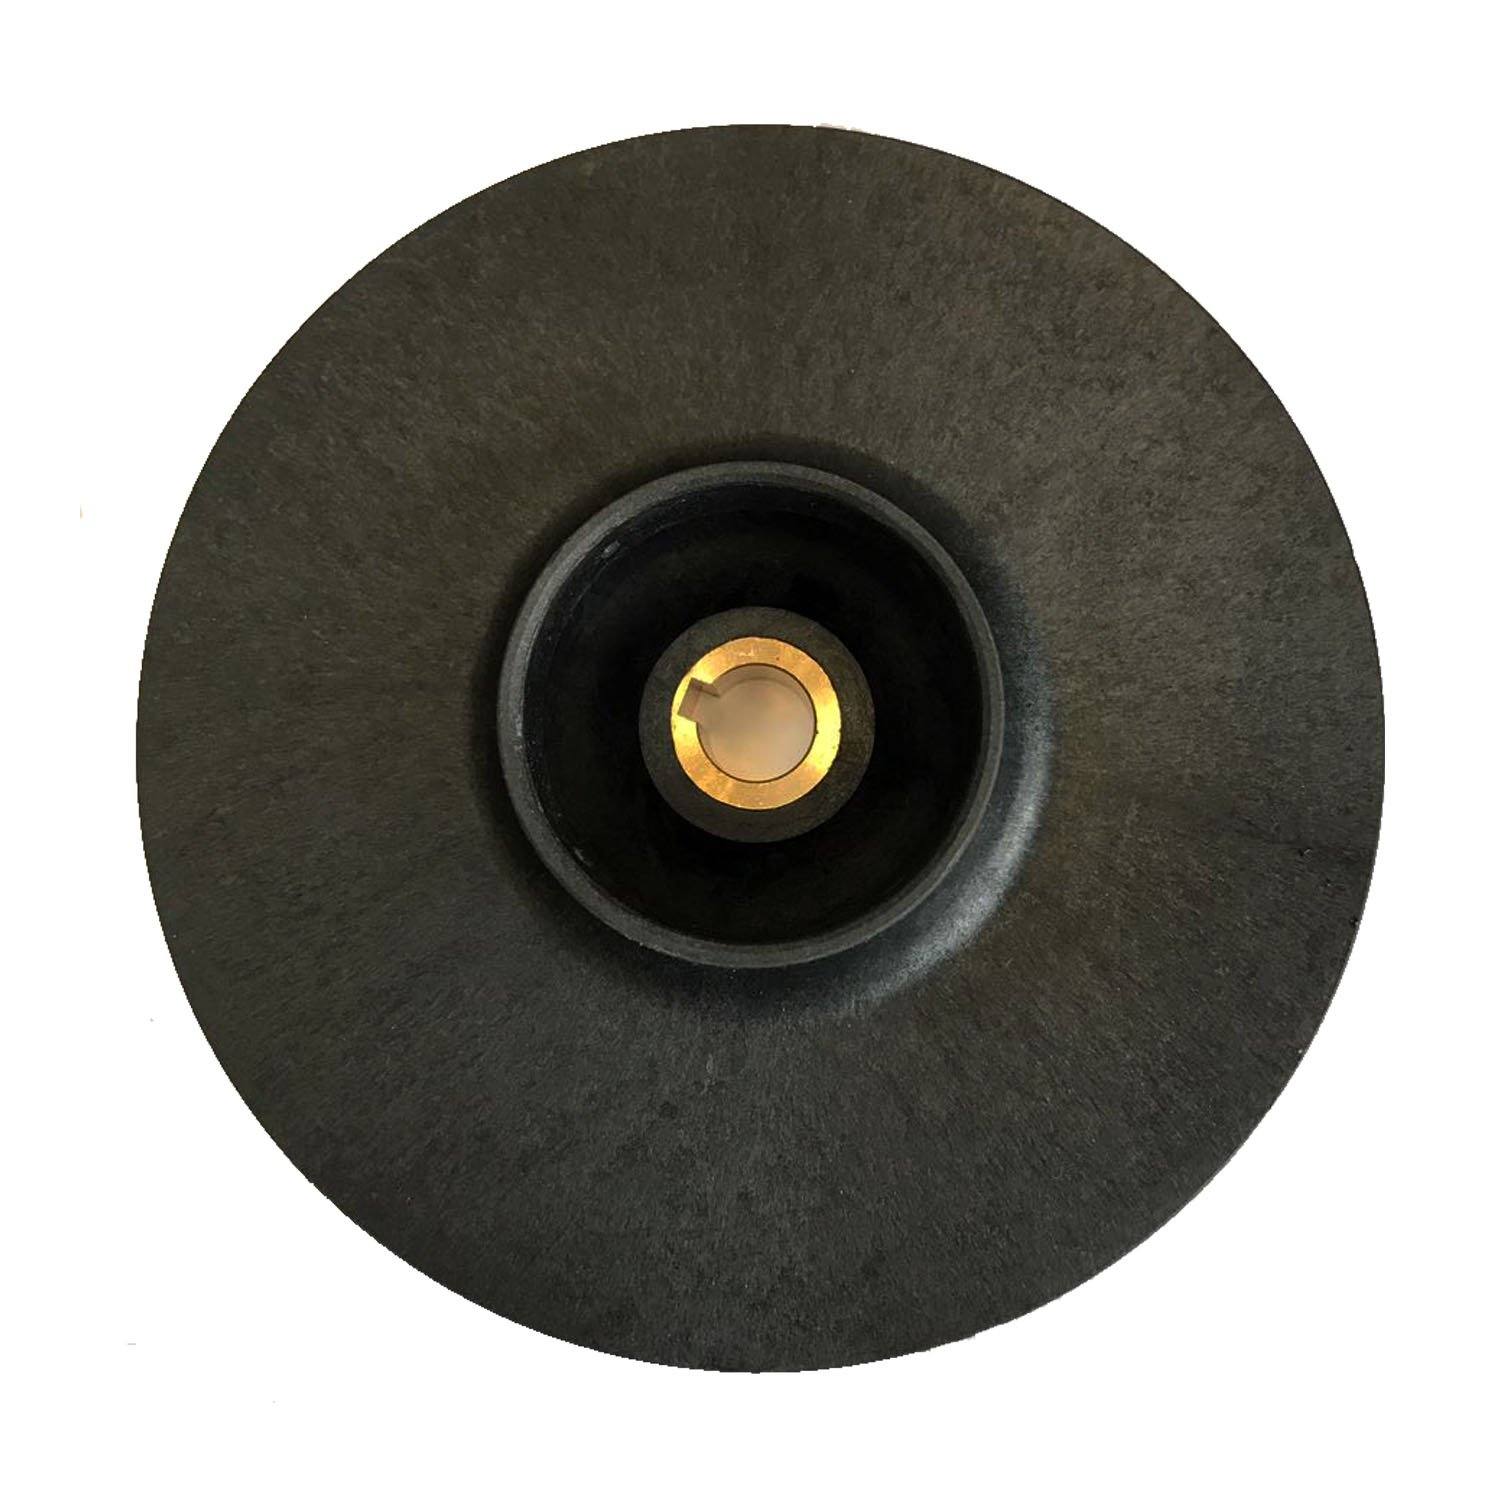 Gogoal PPO impeller JET151 for Pool and Spa Pump